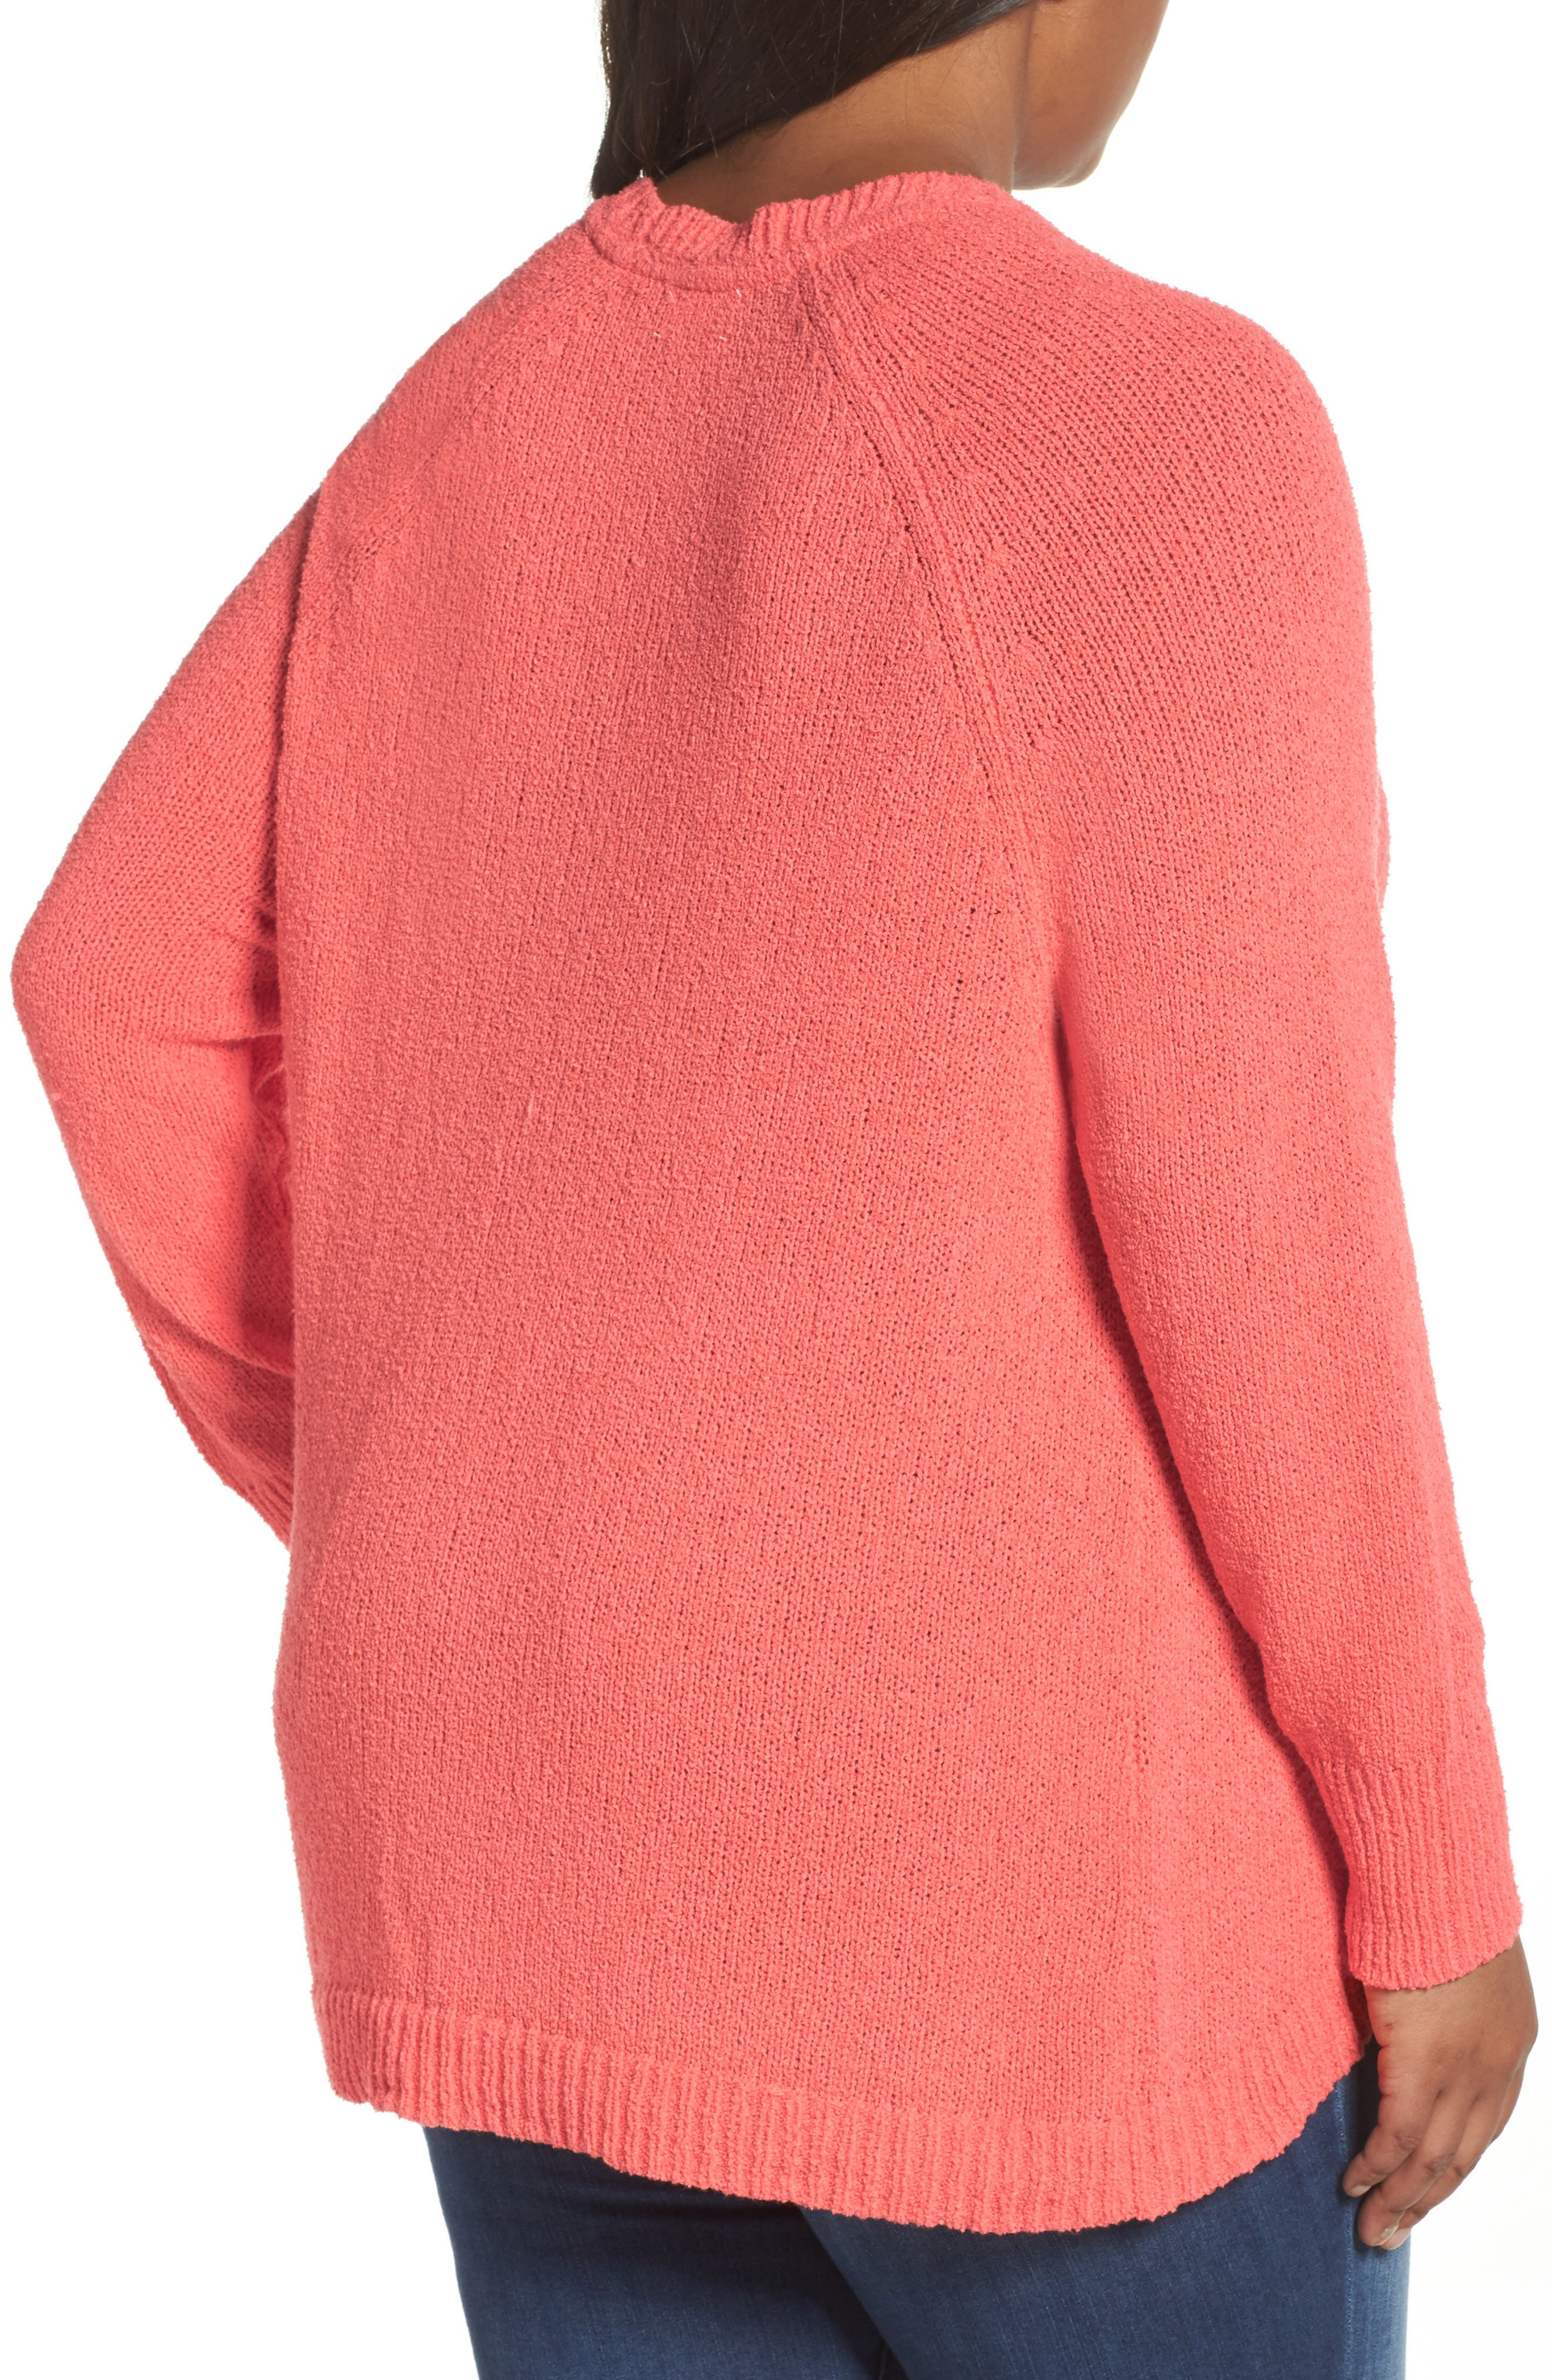 Relaxed Crewneck Sweater,                             Alternate thumbnail 3, color,                             Coral Sea